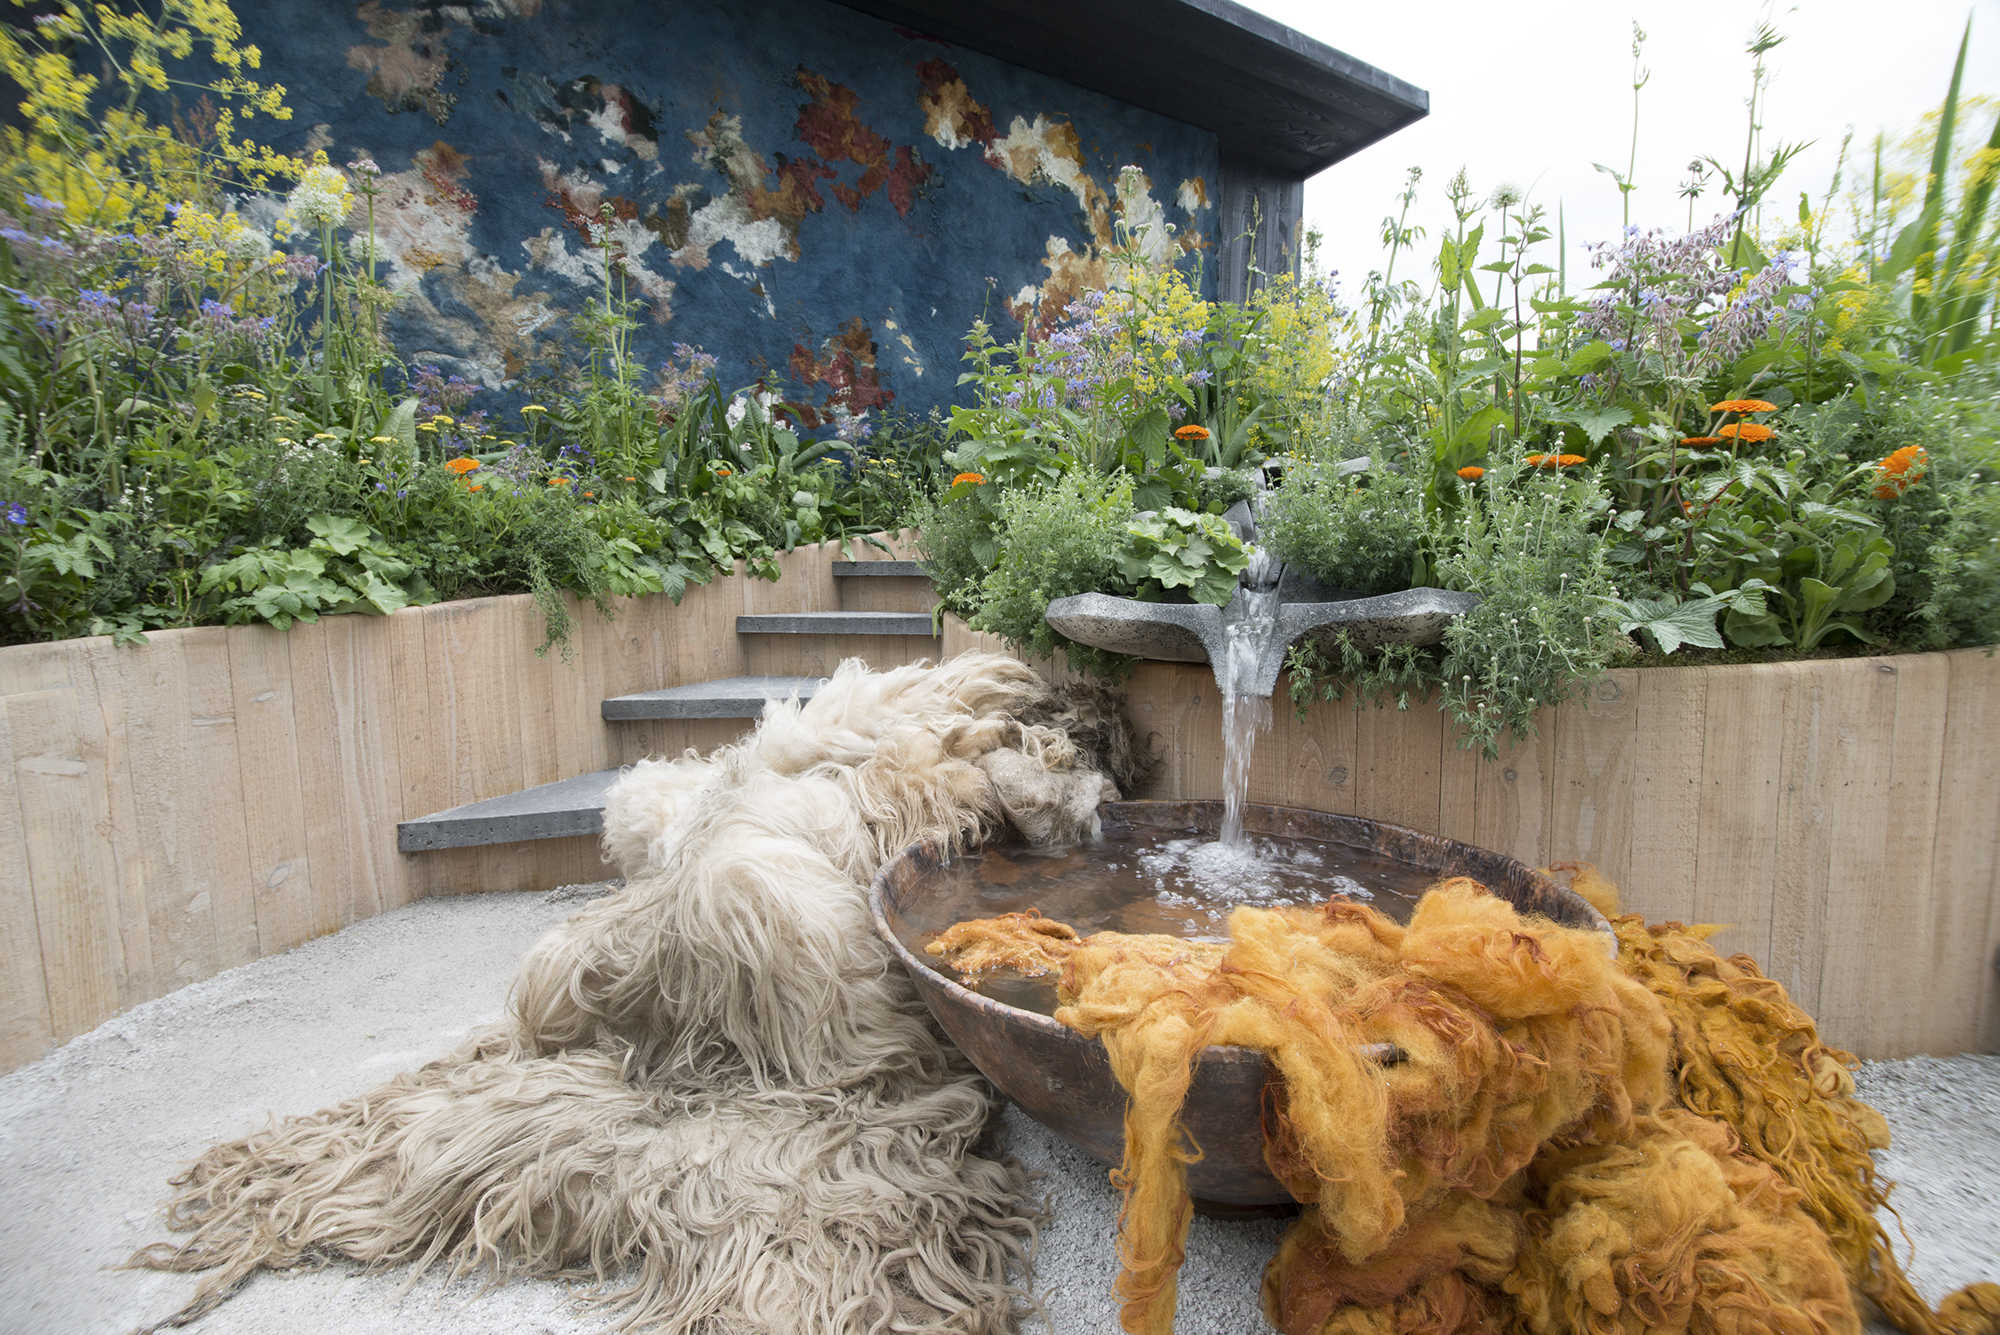 The AkzoNobel dyer's garden was awarded with a Silver-Gilt medal at the Chelsea Flower Show in 2016.